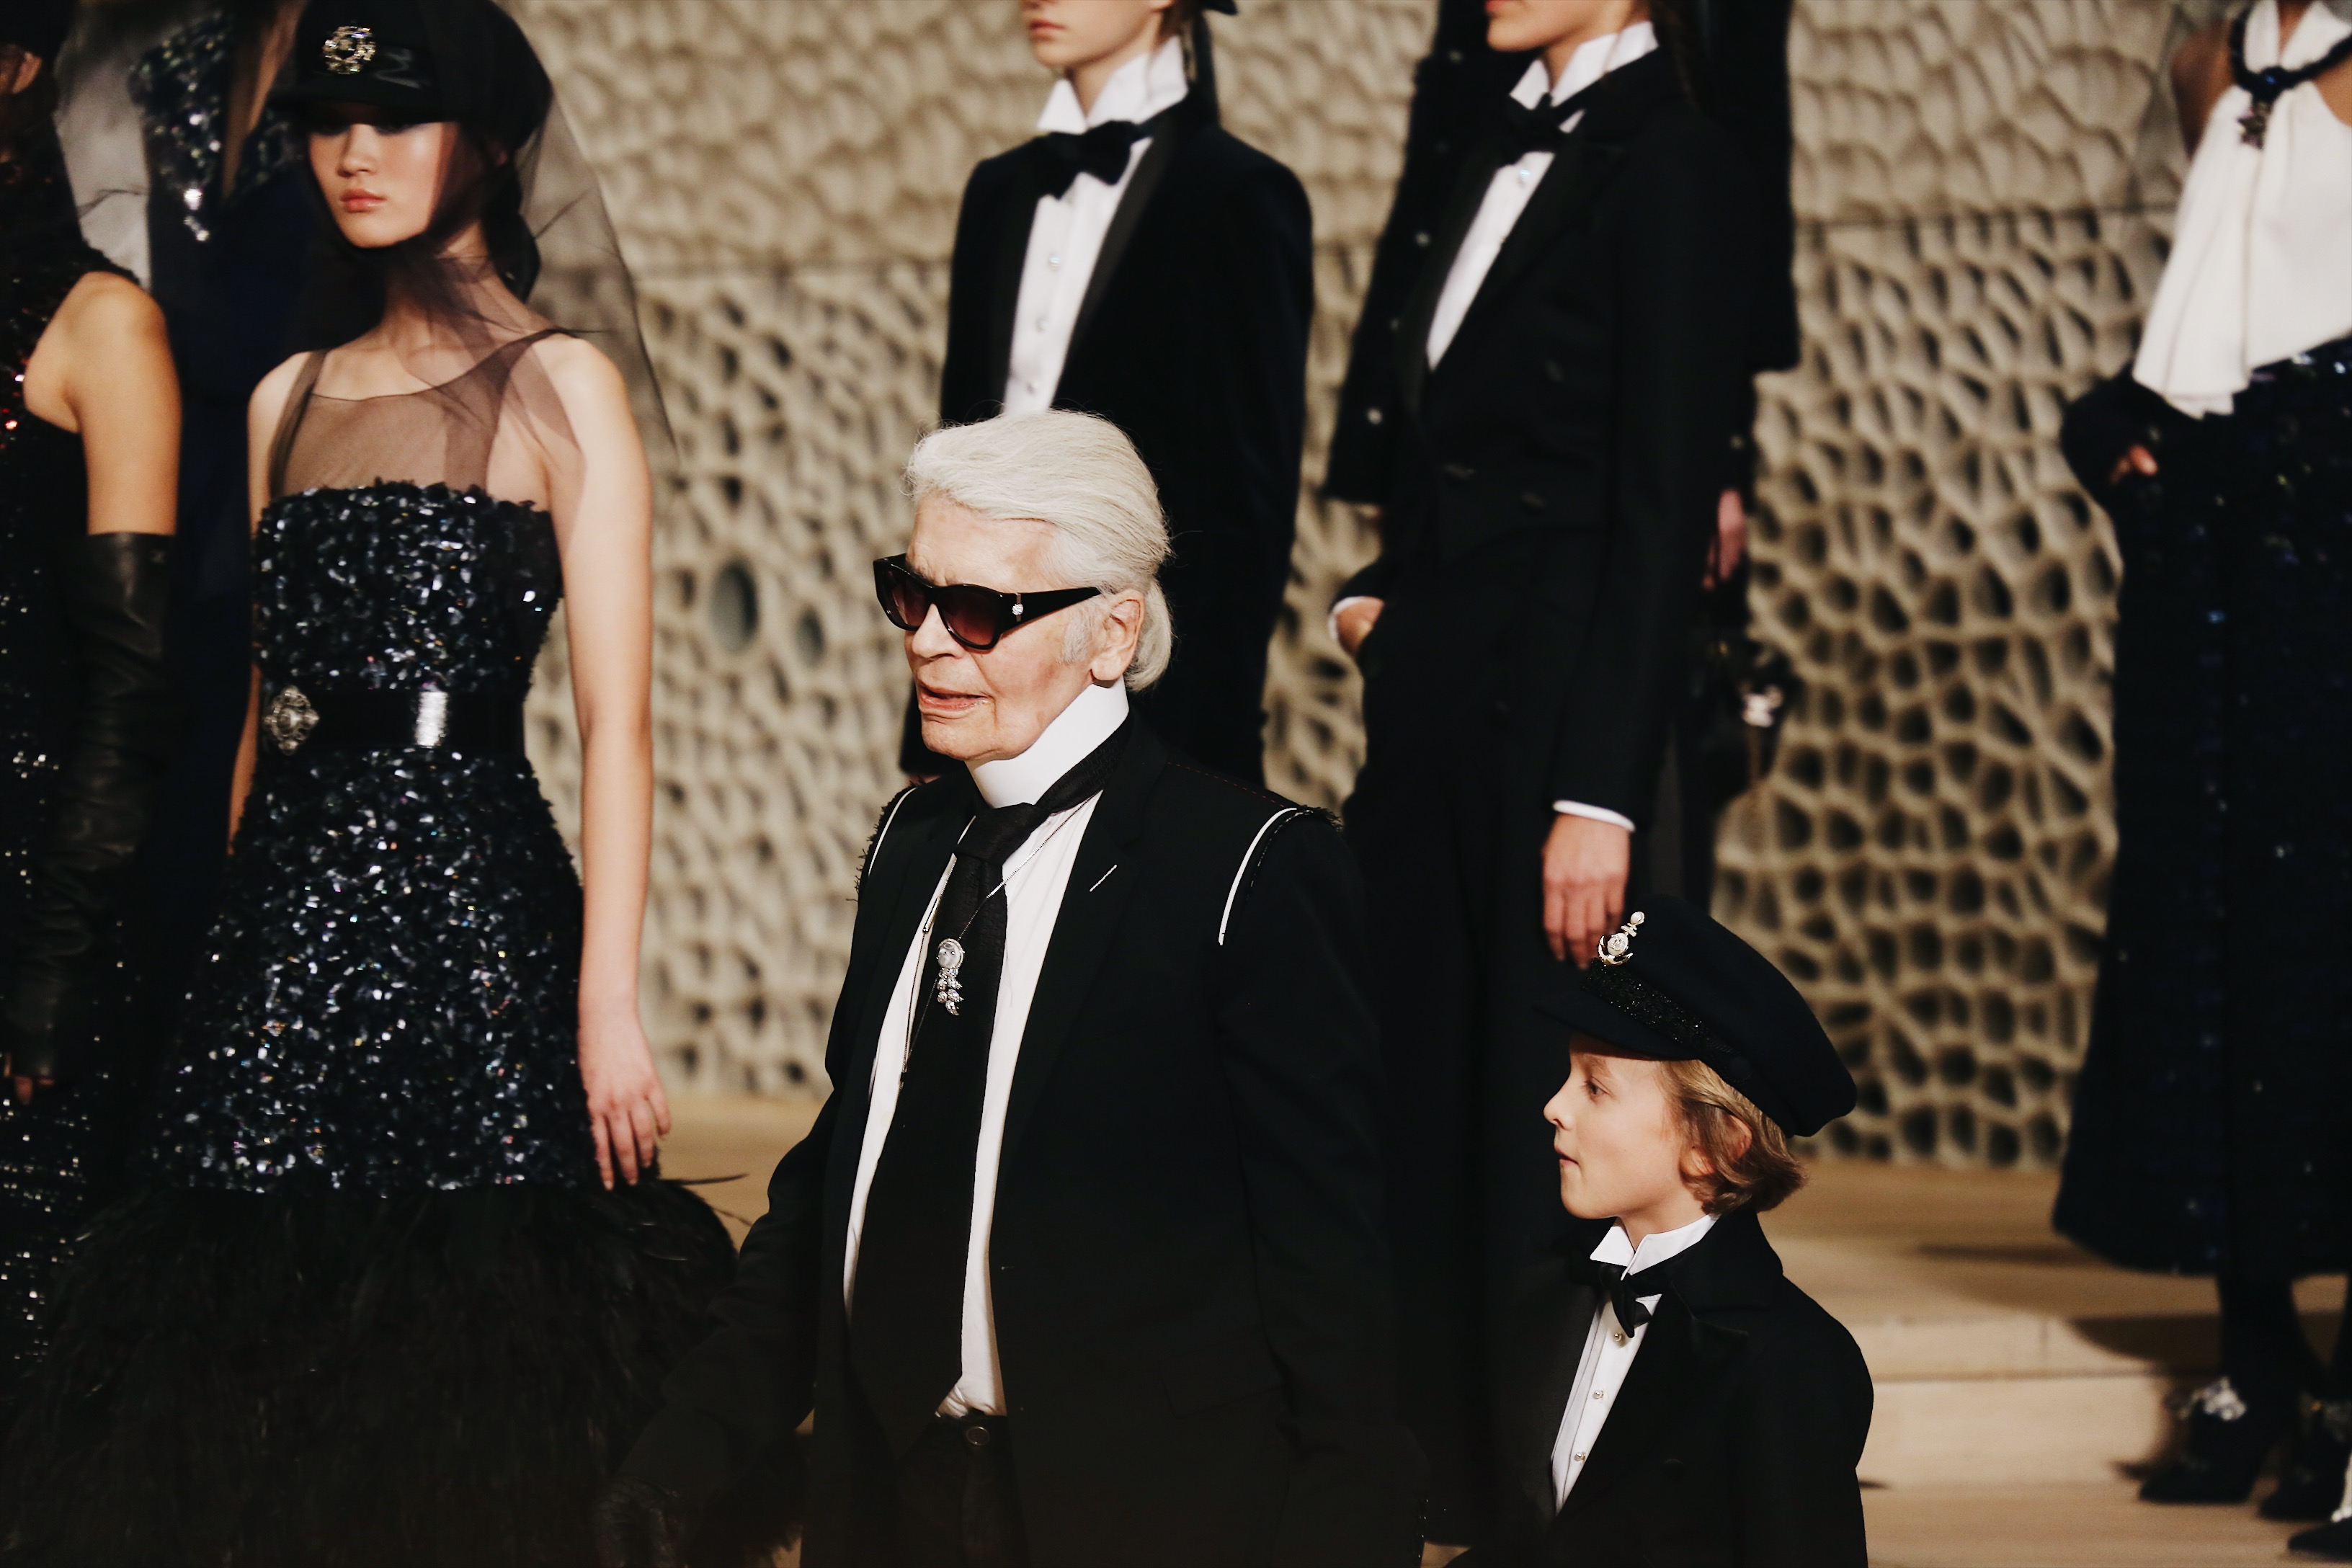 CHANEL Imagery by Sylvia Haghjoo